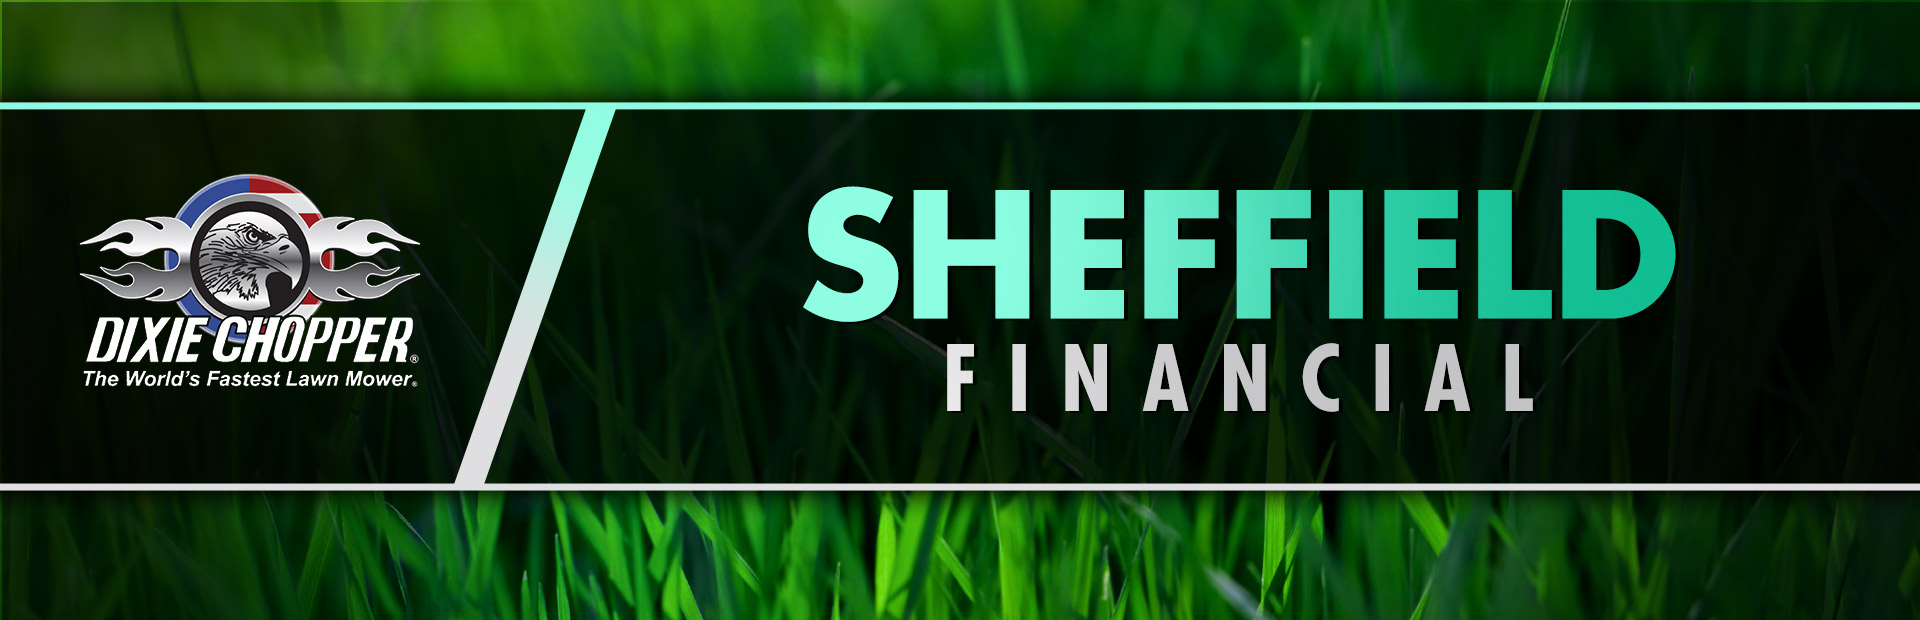 Dixie Chopper: Sheffield Financial